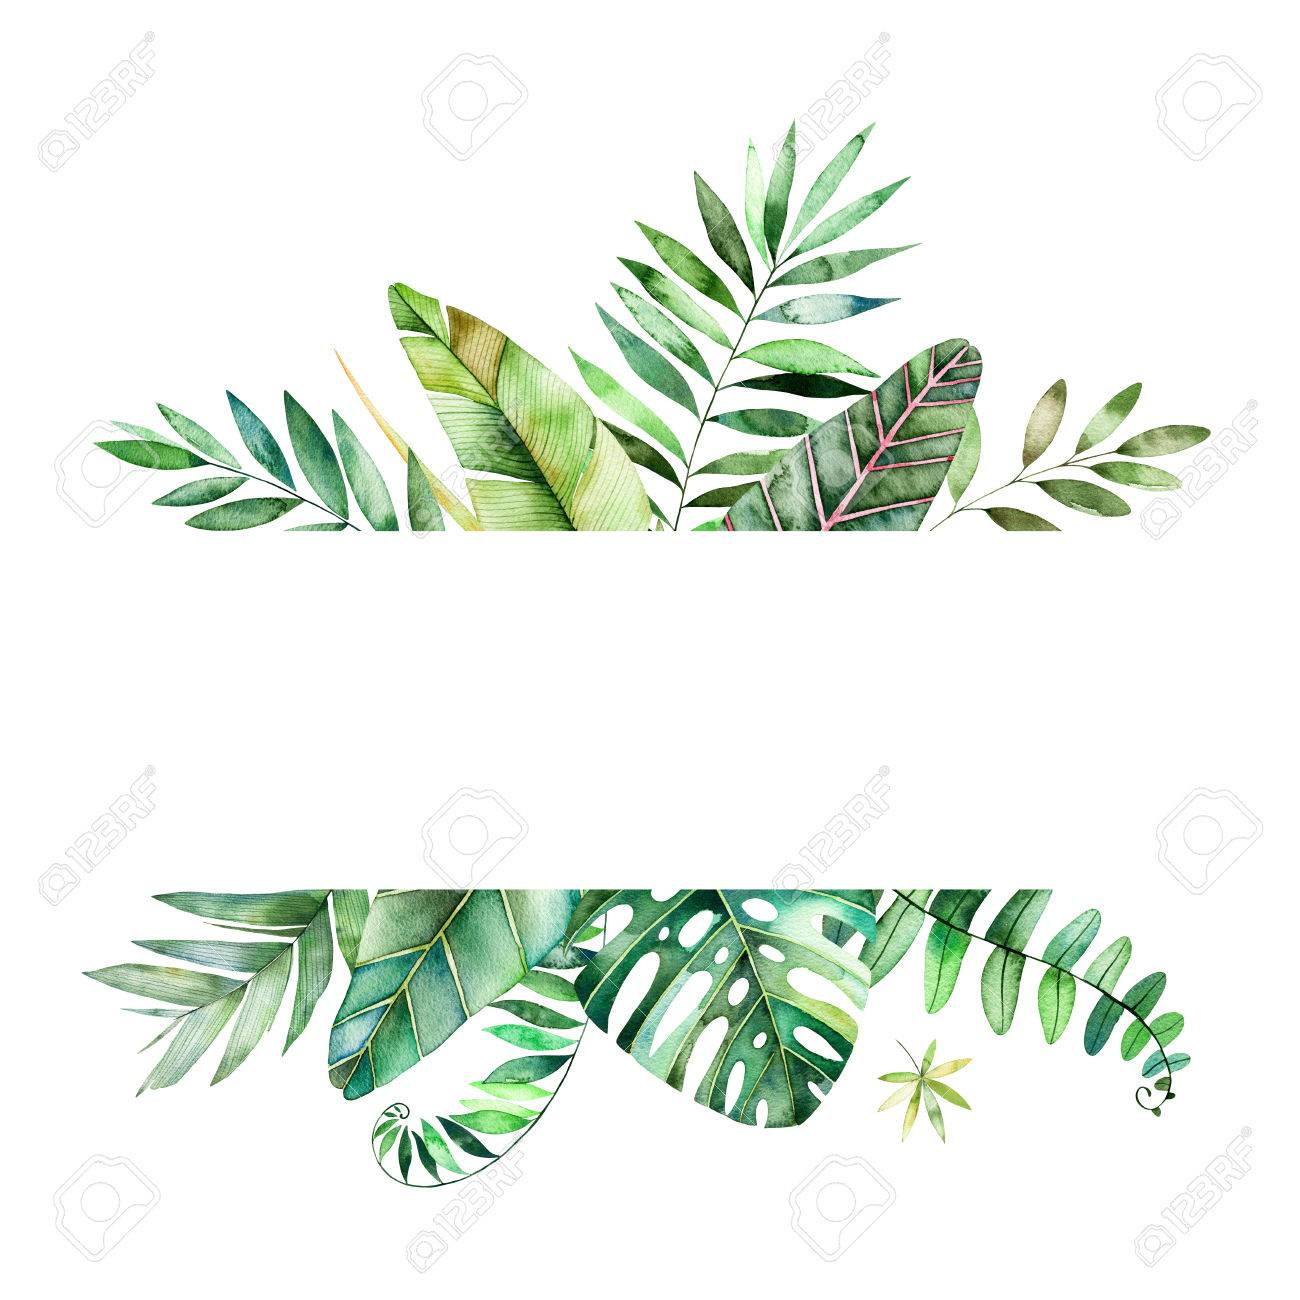 Colorful Floral Frame With Colorful Tropical Leaves Tropical Stock Photo Picture And Royalty Free Image Image 75998994 Check out our tropical leaf quote selection for the very best in unique or custom, handmade pieces from our shops. colorful floral frame with colorful tropical leaves tropical